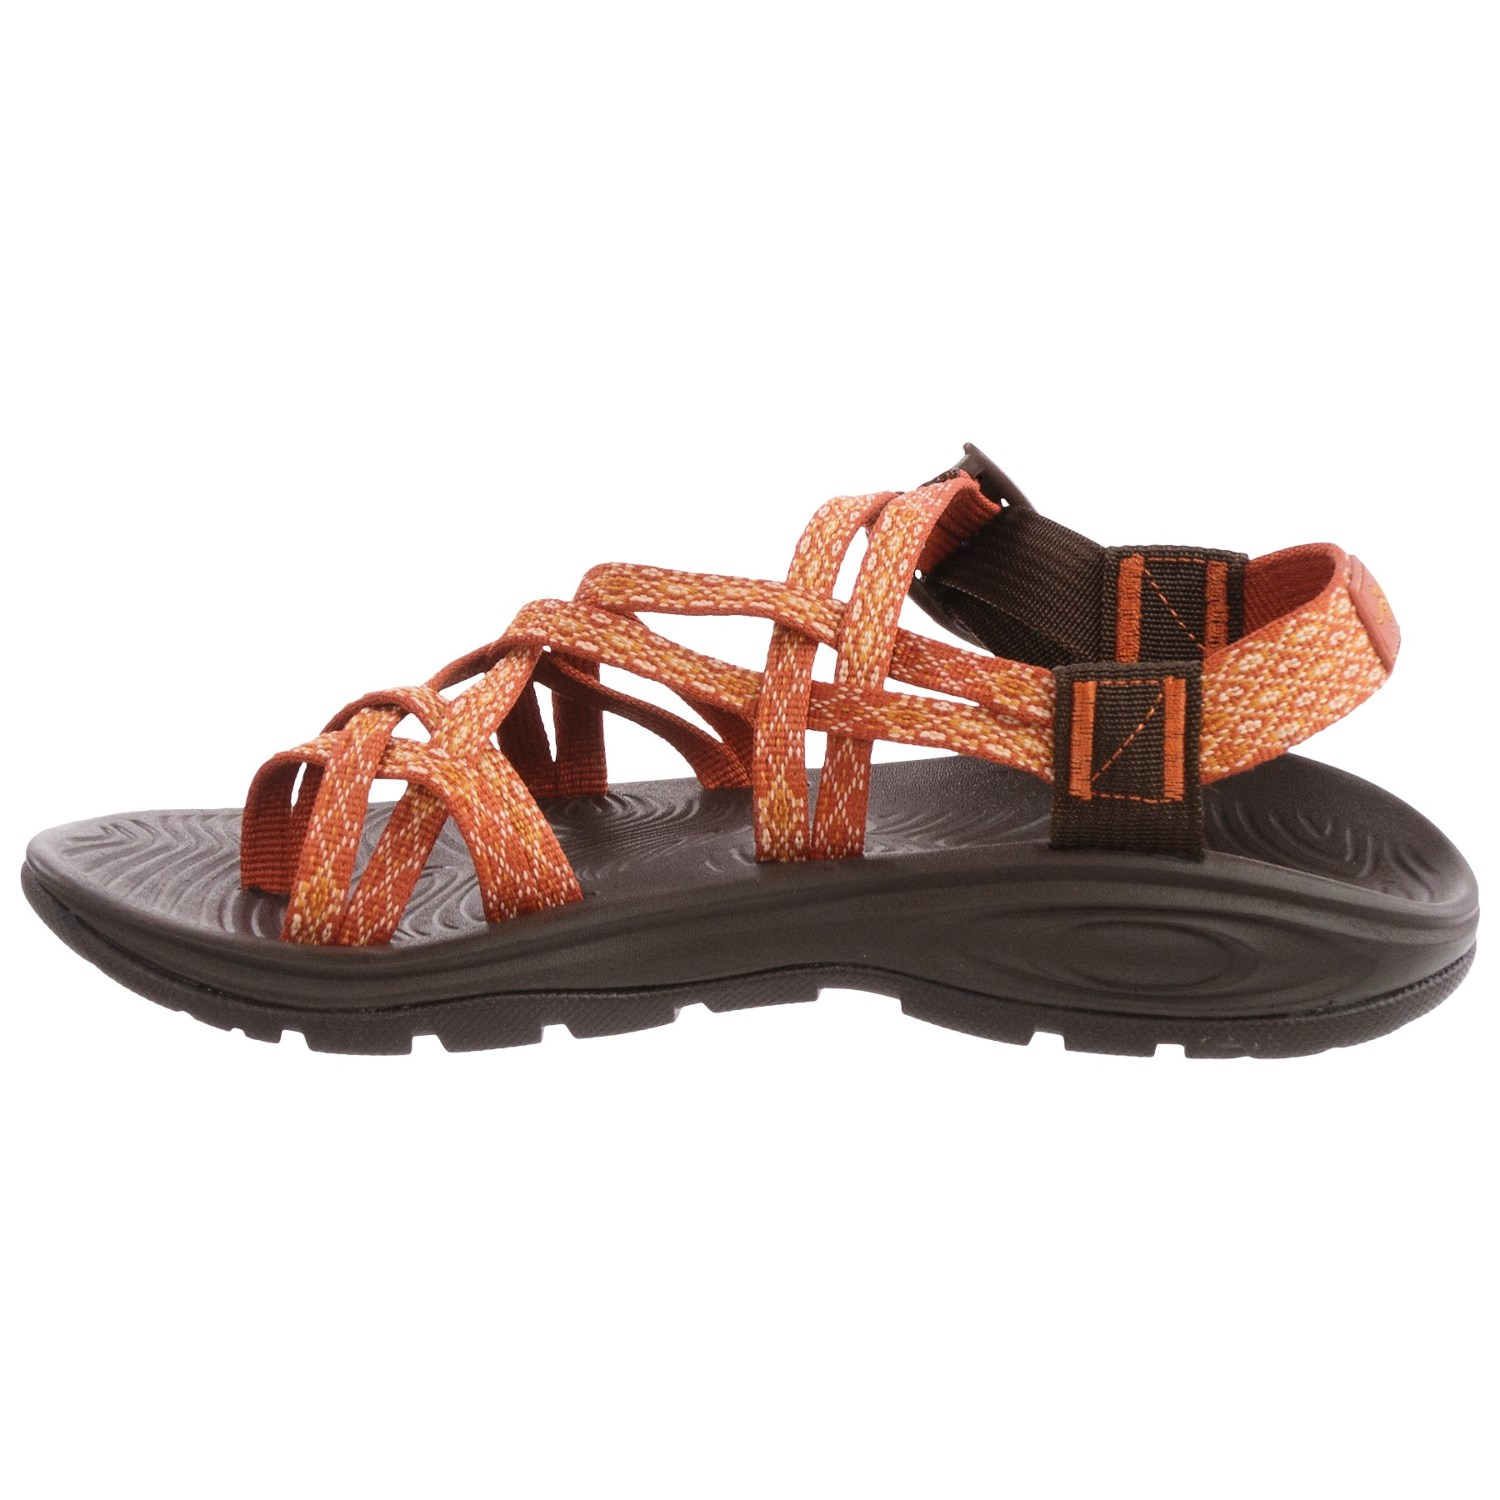 830cb56a8015 Chaco Z Volv X2 Sport Sandals (For Women) - Save 40%